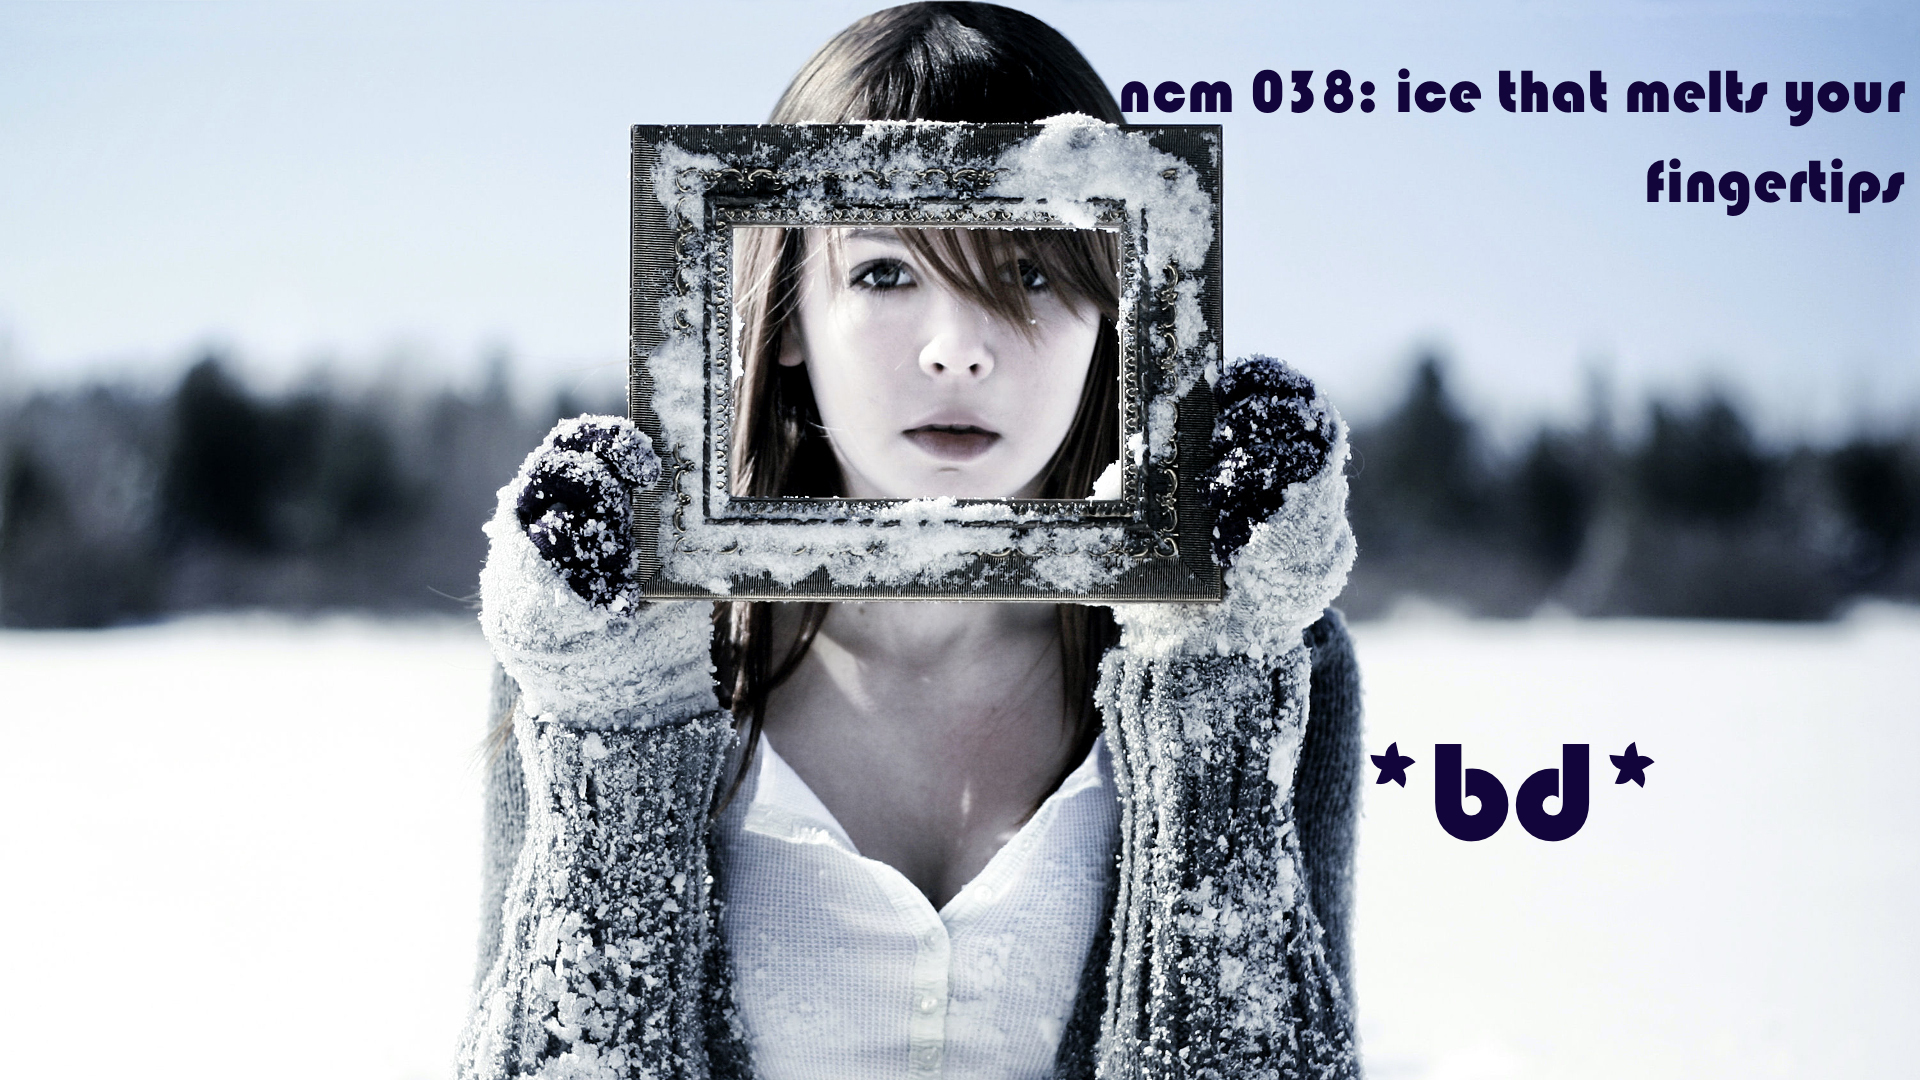 night club musical act 038: ice that melts your fingertips